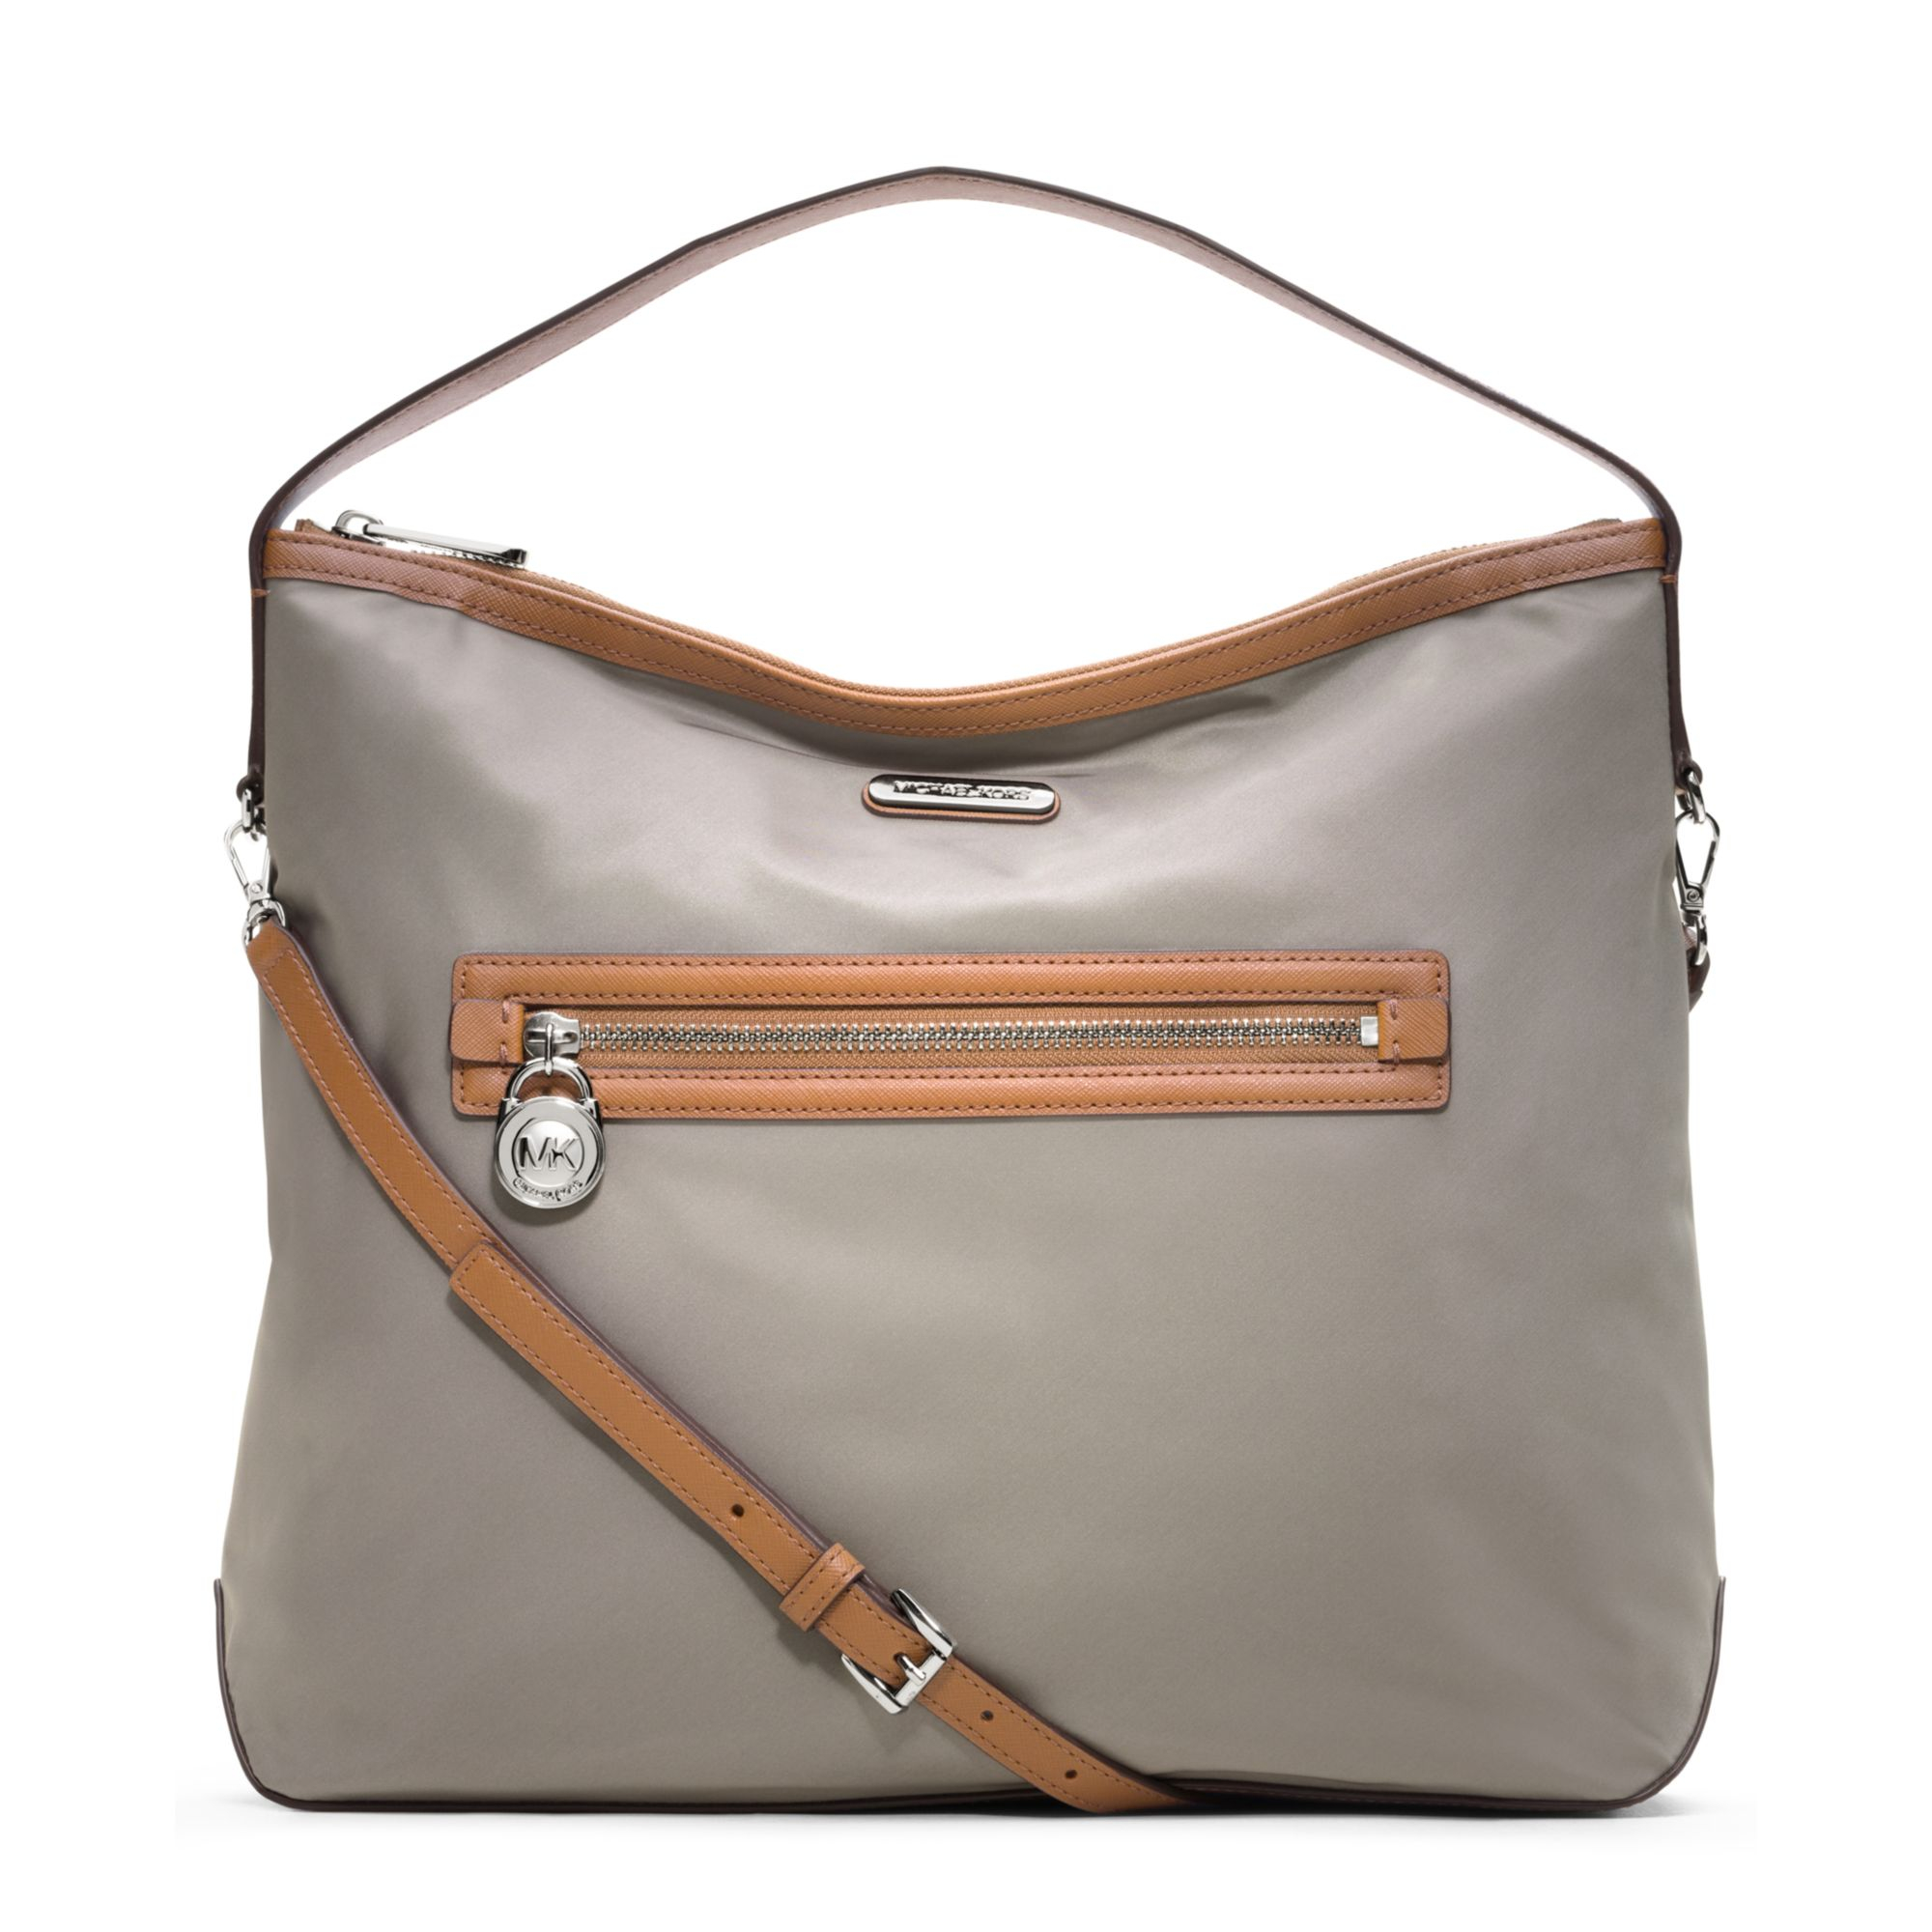 17adf77f1e5f Gallery. Previously sold at: Macy's · Women's Michael Kors Kempton ...